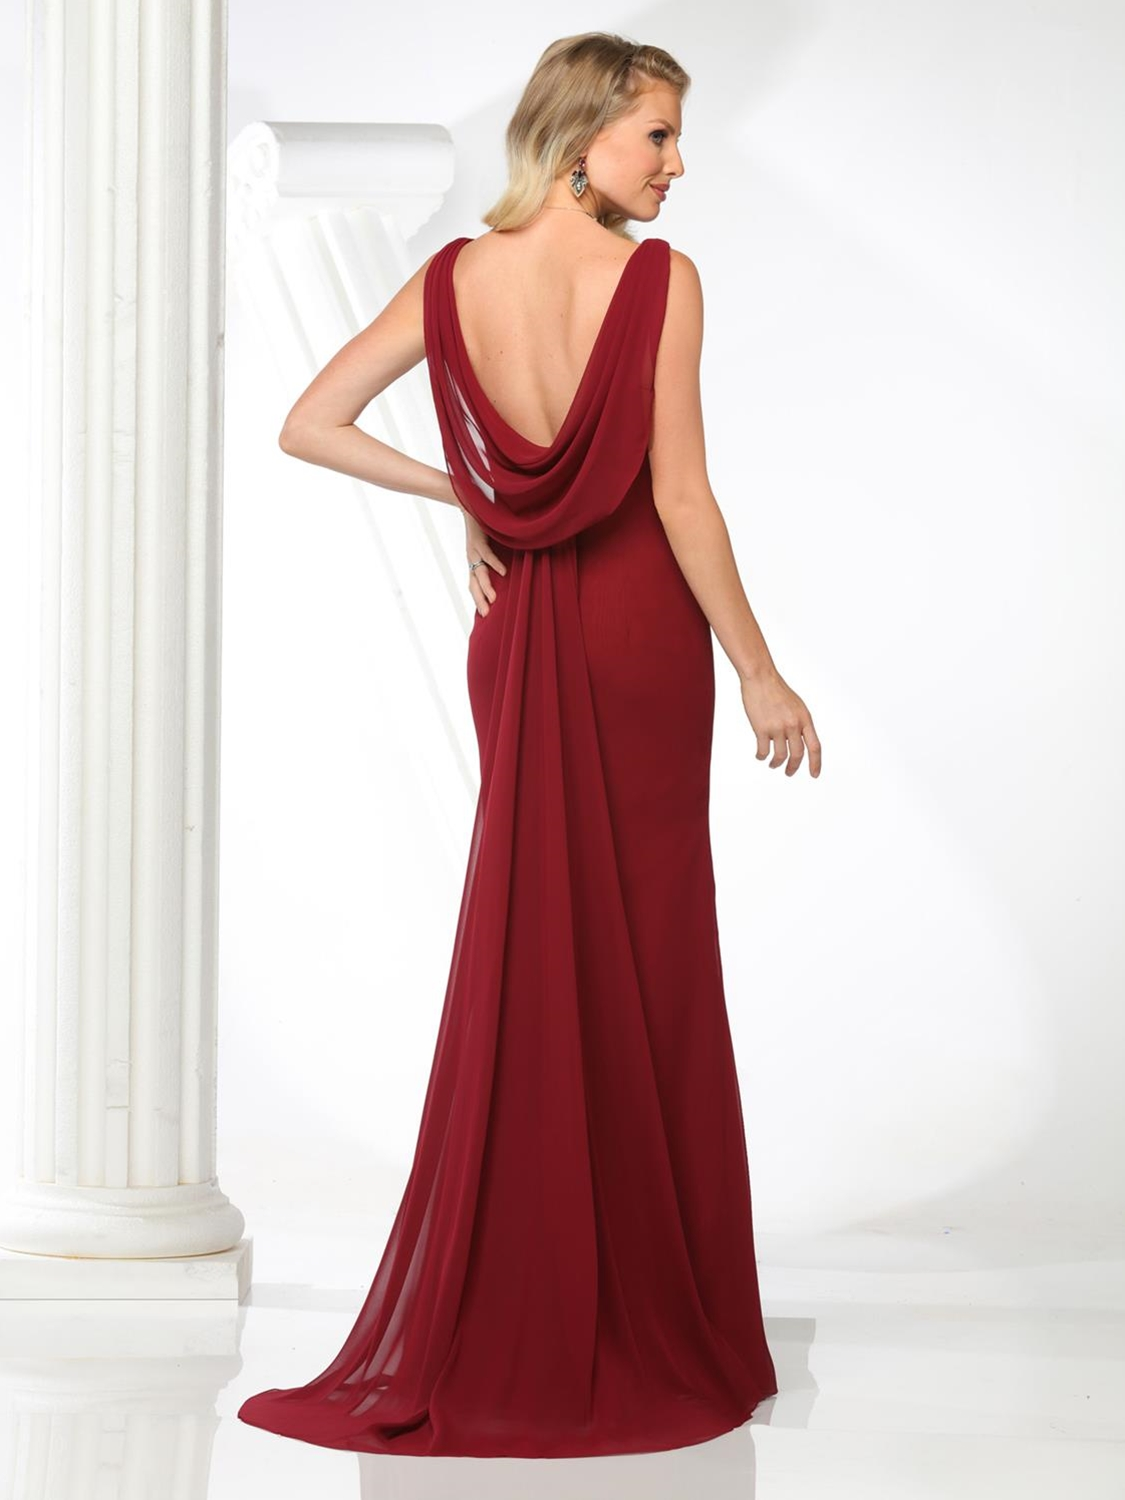 Davinci bridesmaids bridesmaid dress style 60280 house of brides ombrellifo Gallery